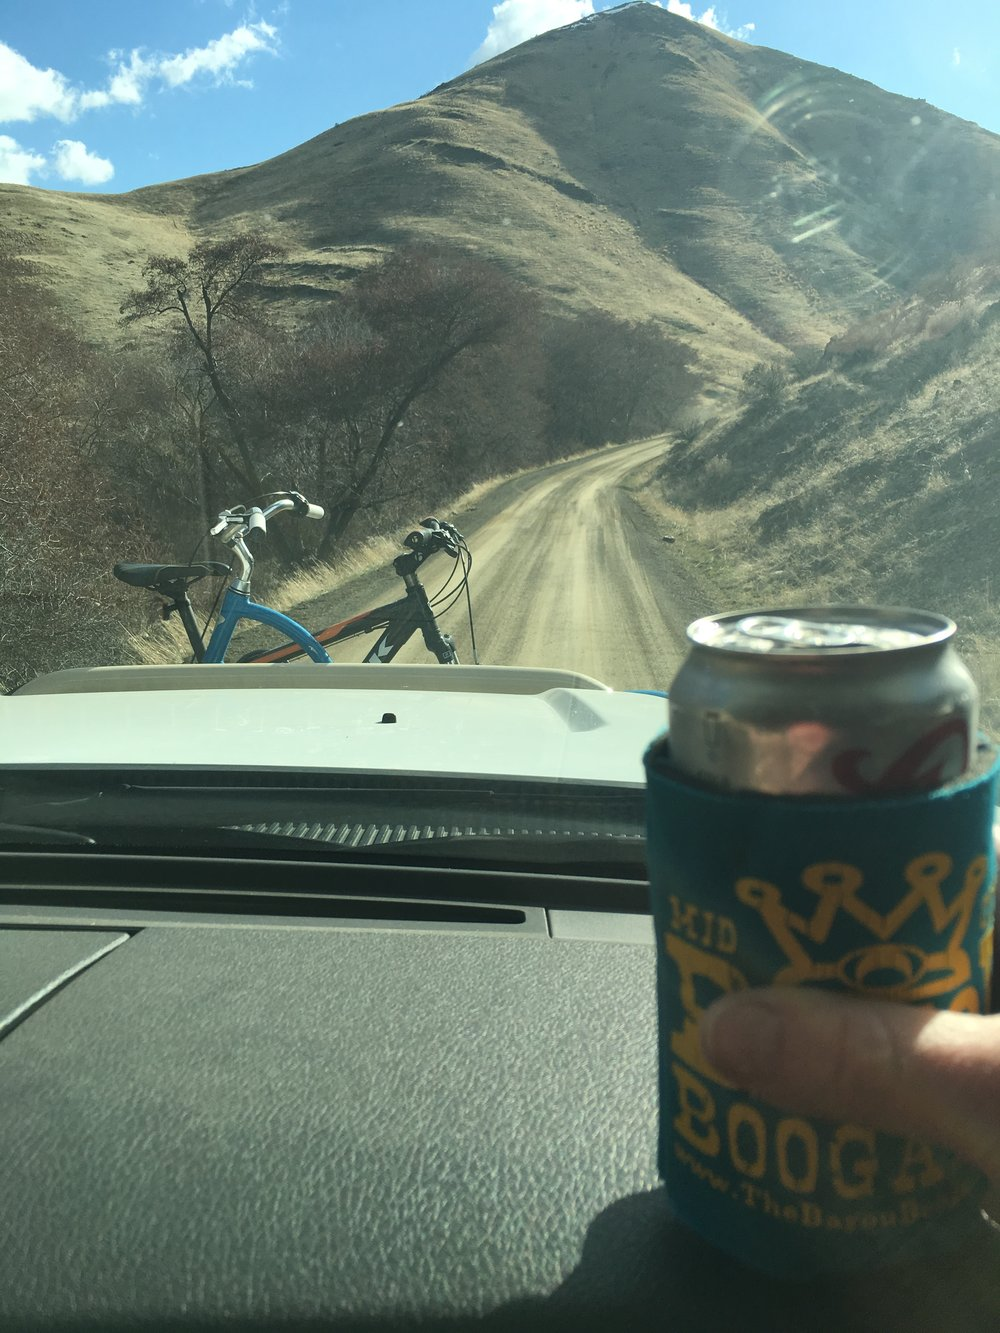 """It's been a long dusty road! We gave up hope, and are pushing through with dirt """"road sodas""""!"""